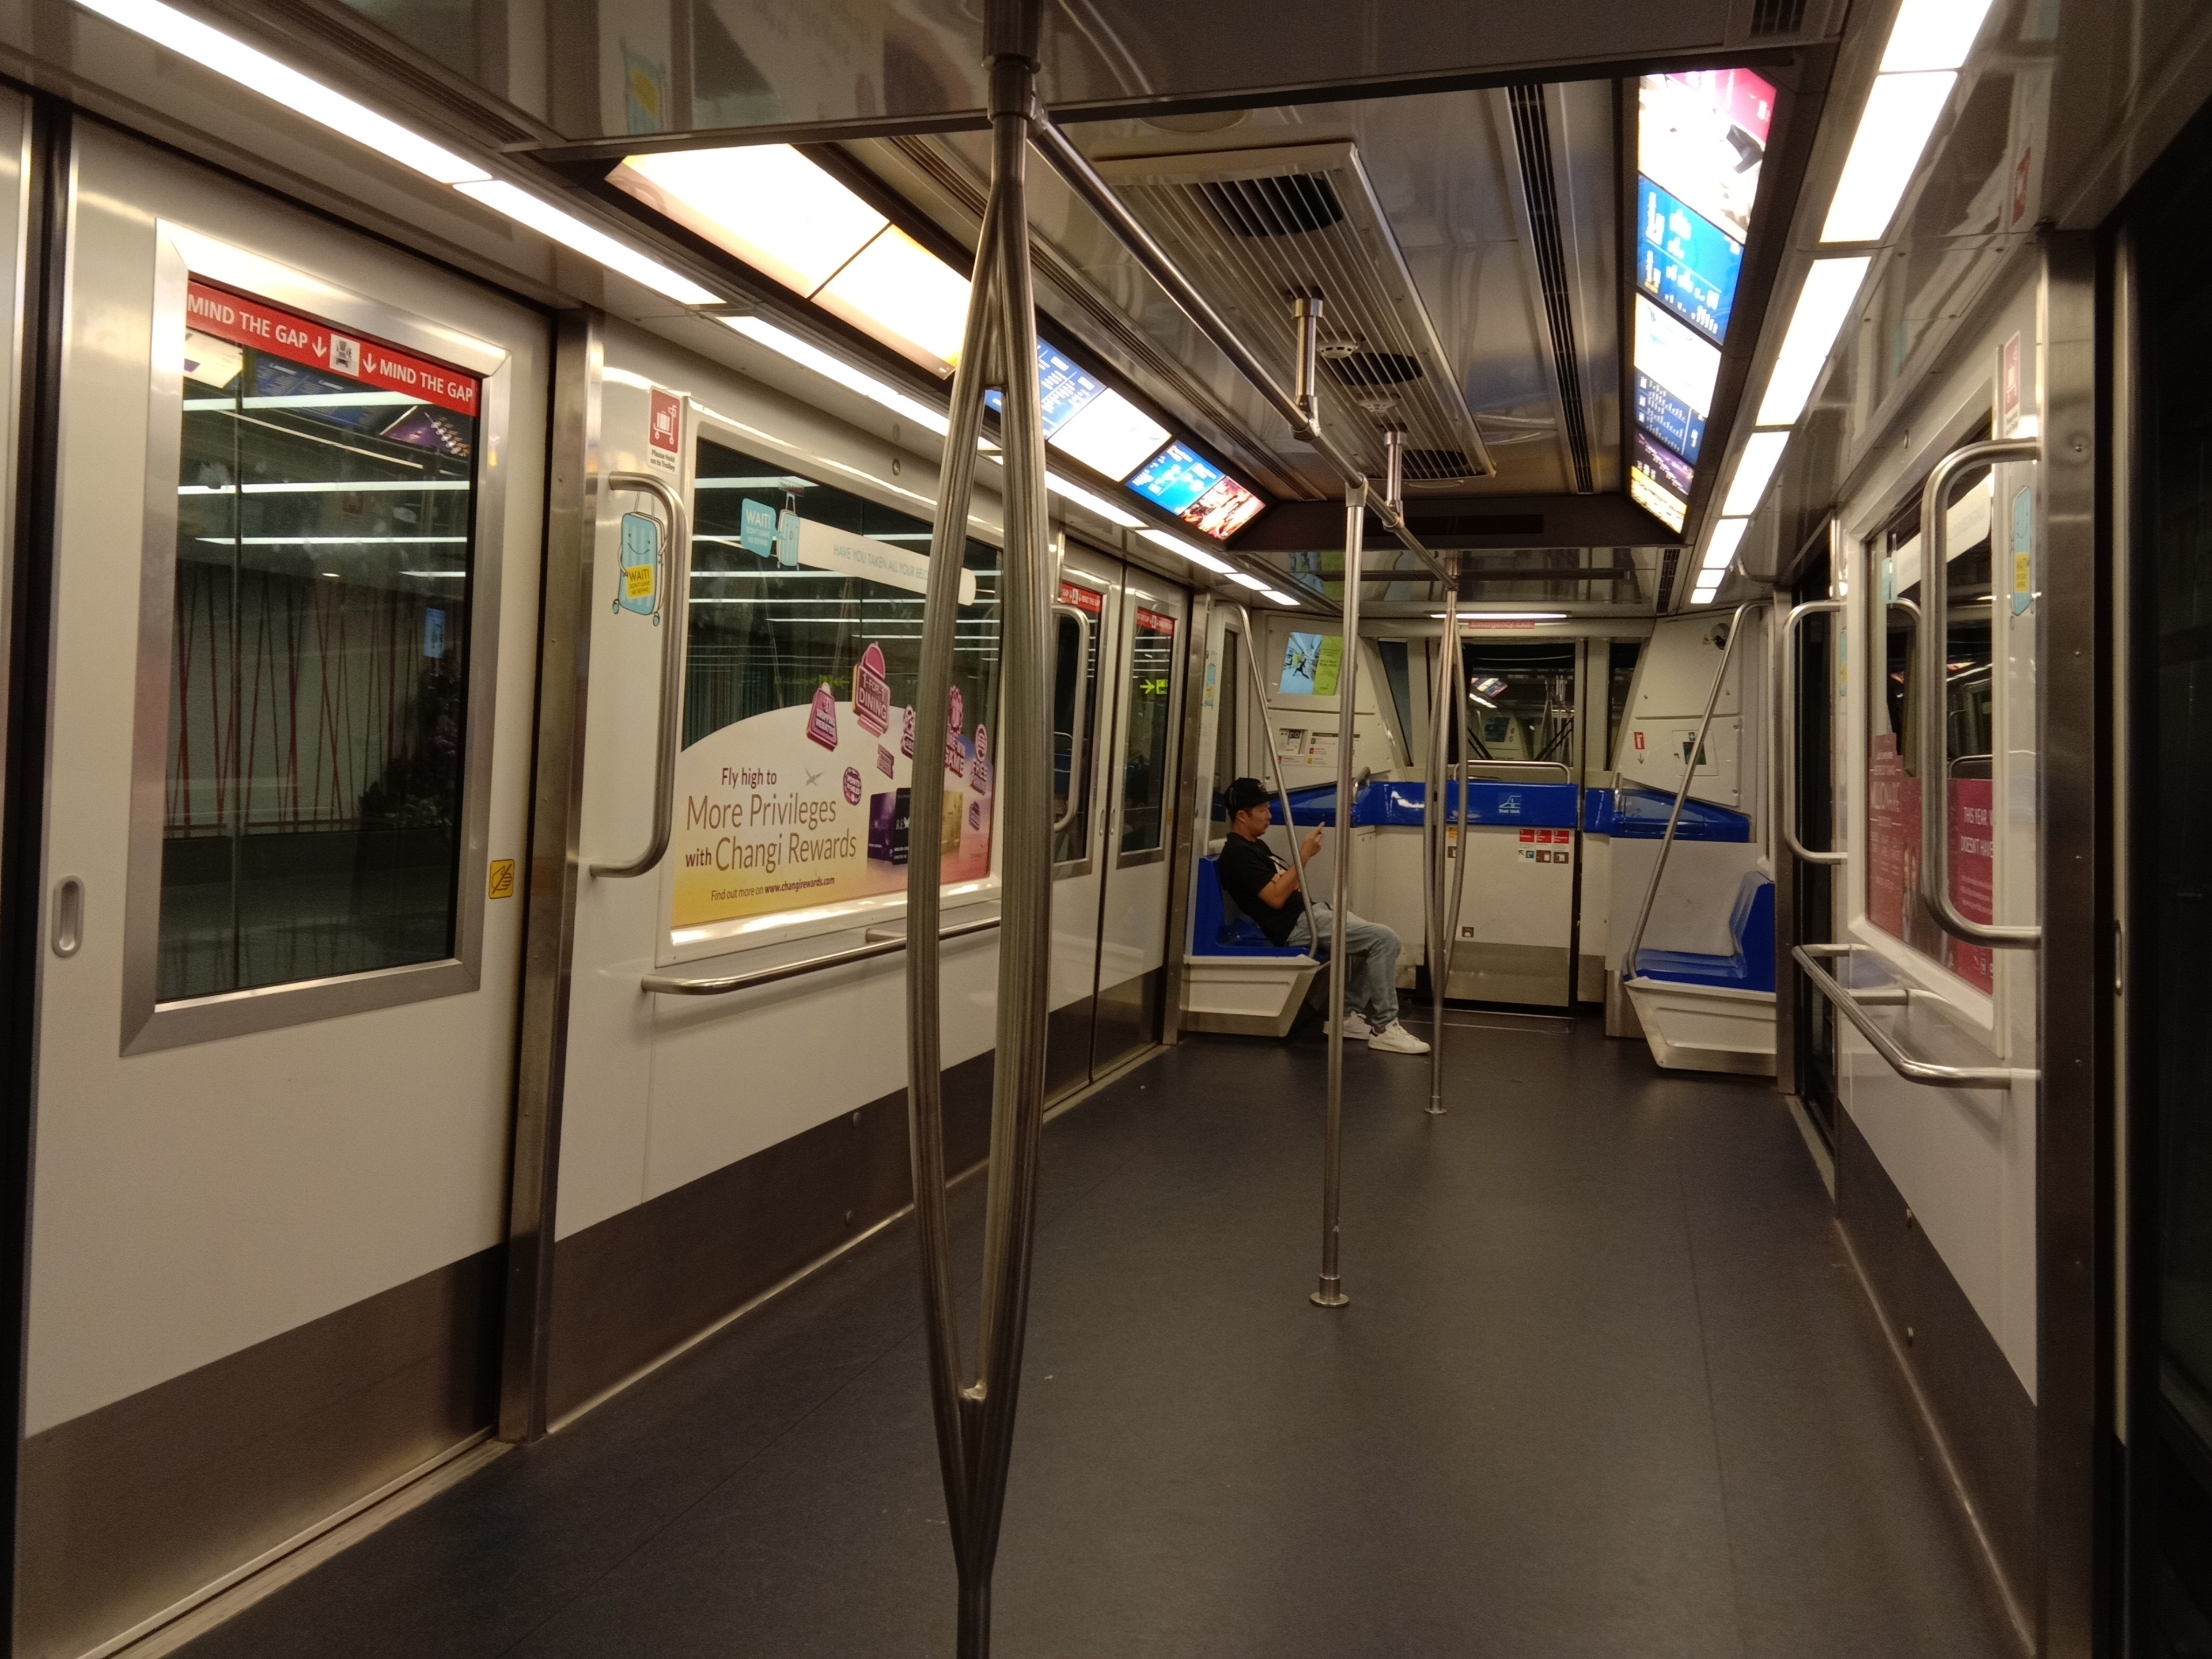 Skytrain and it's free!